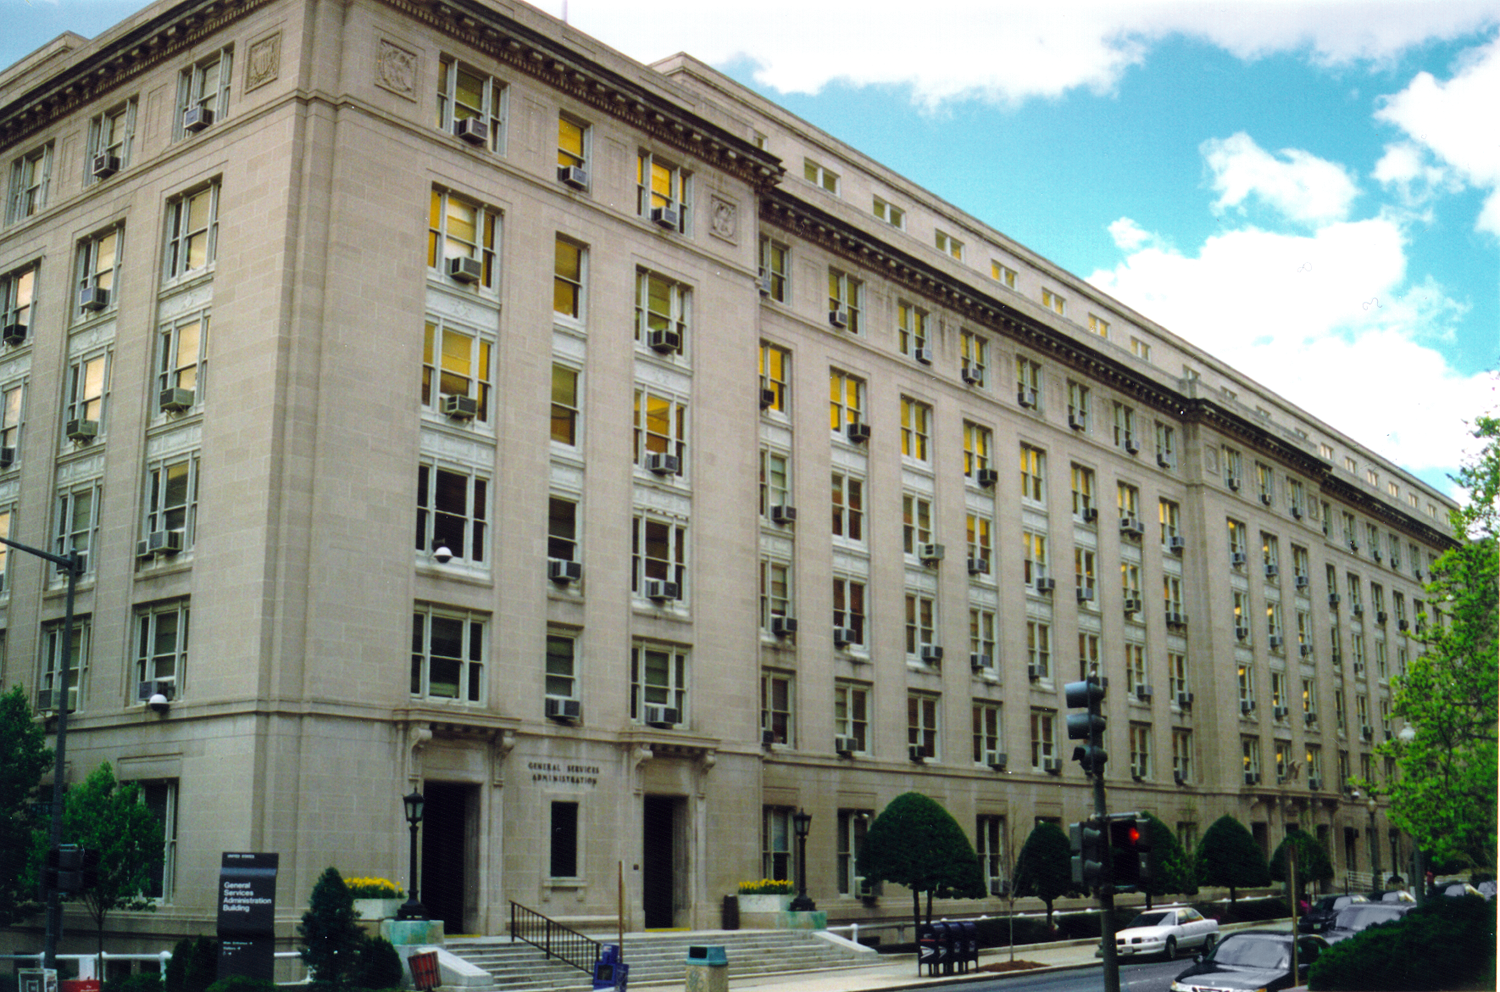 GSA, General Services Administration